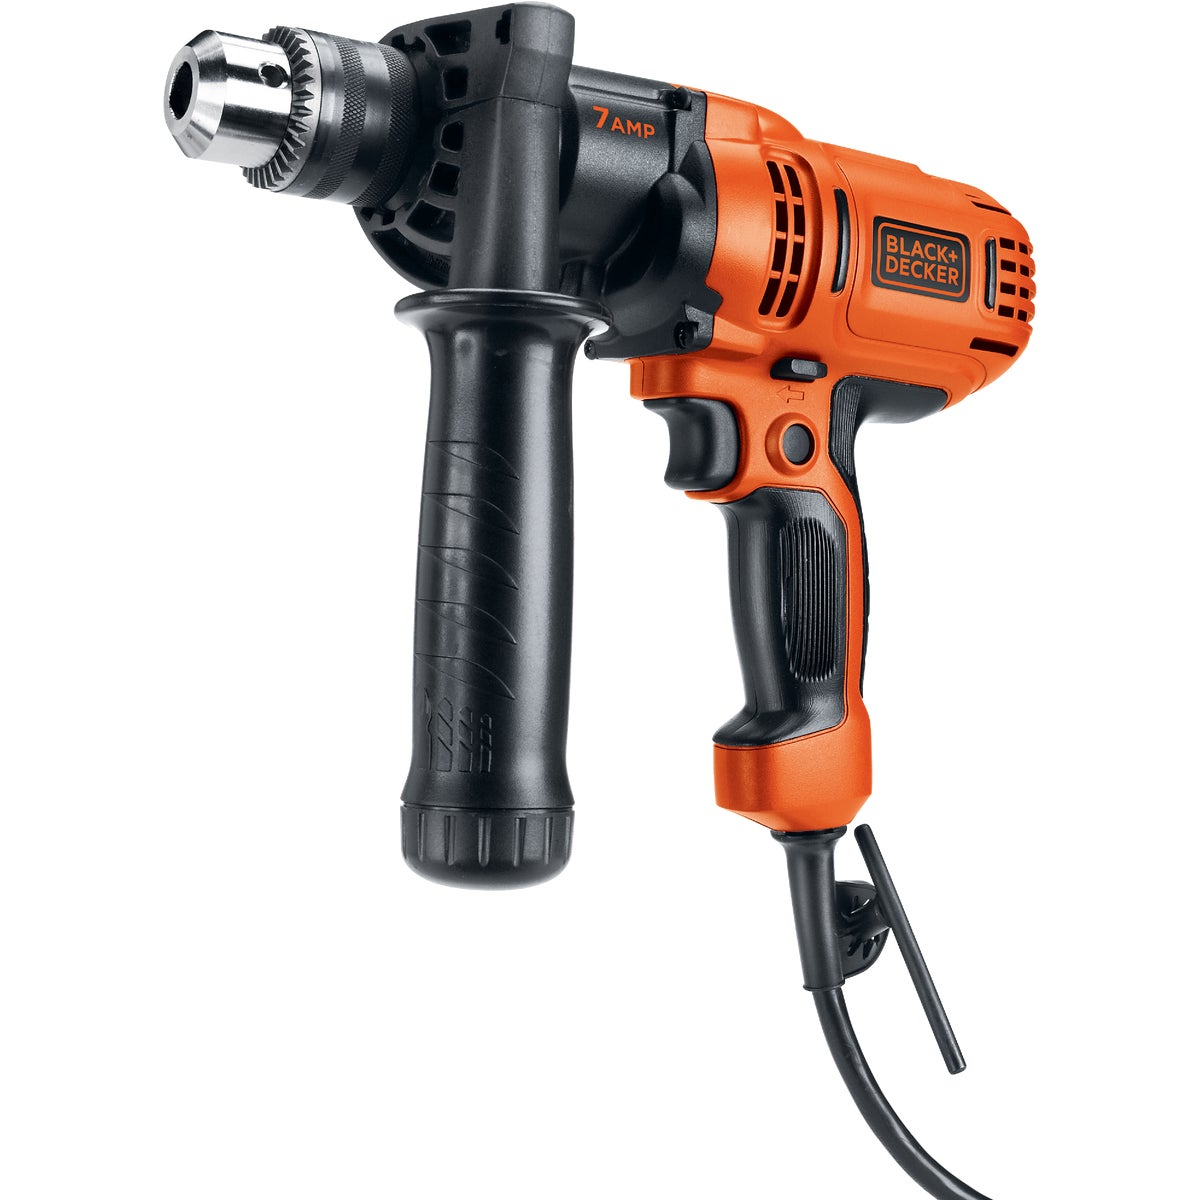 "7.0A 1/2"" VSR DRILL - DR560 by Black & Decker"